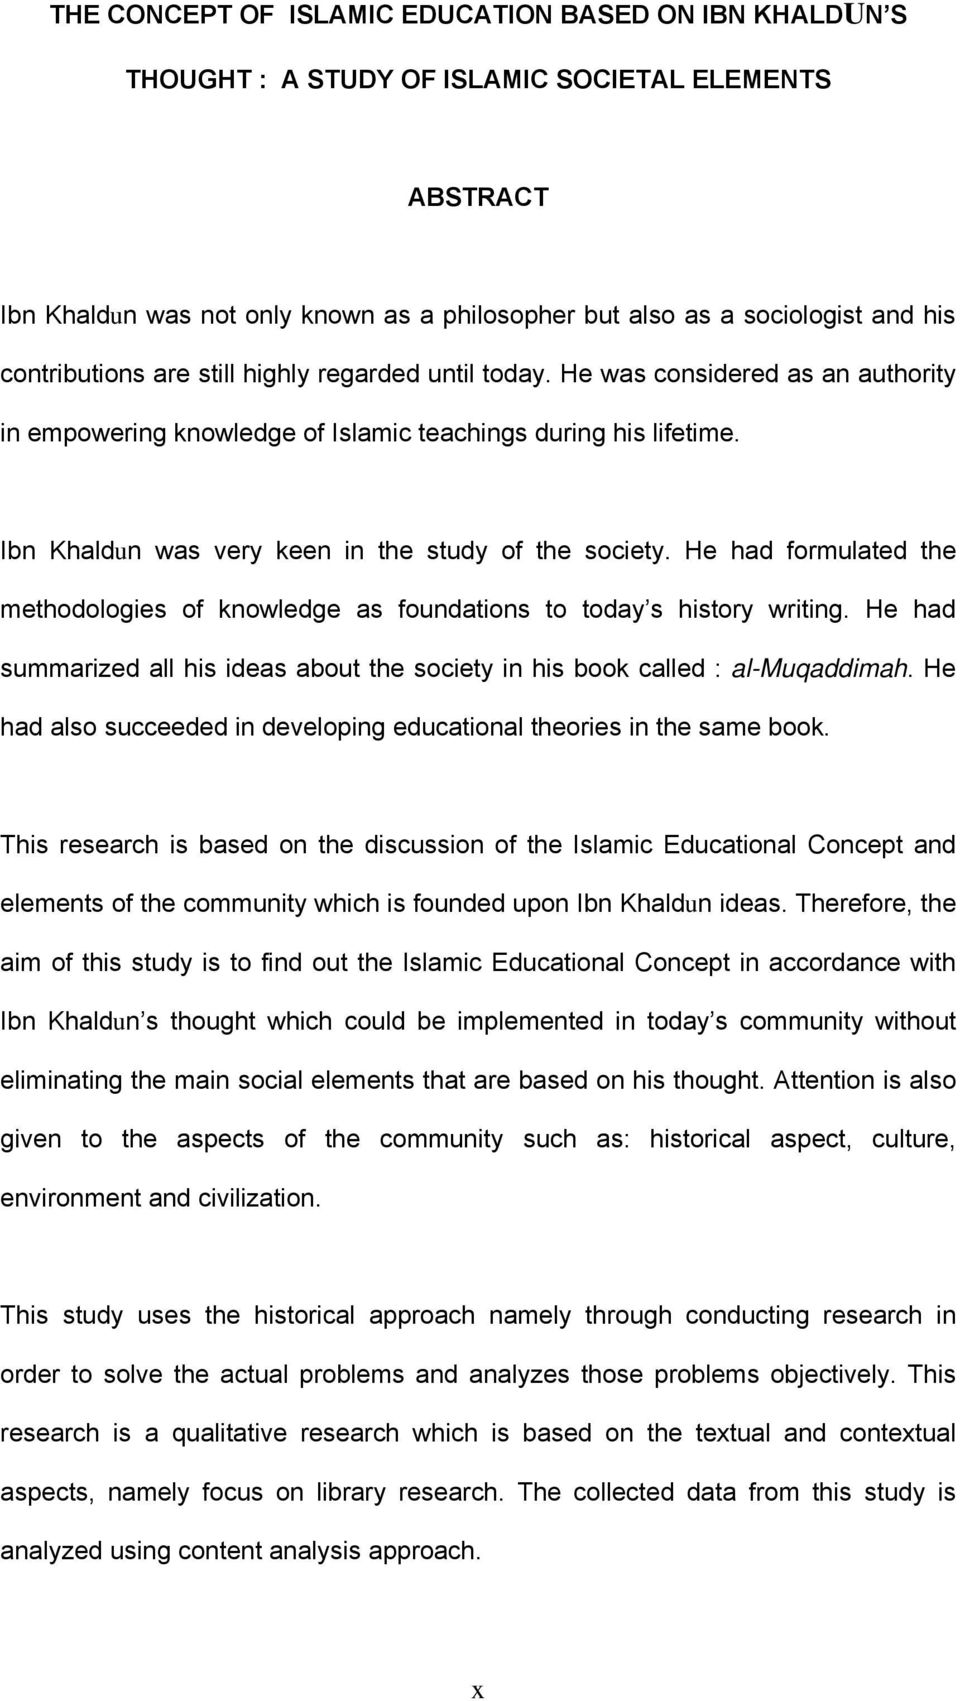 Ibn Khaldun was very keen in the study of the society. He had formulated the methodologies of knowledge as foundations to today s history writing.